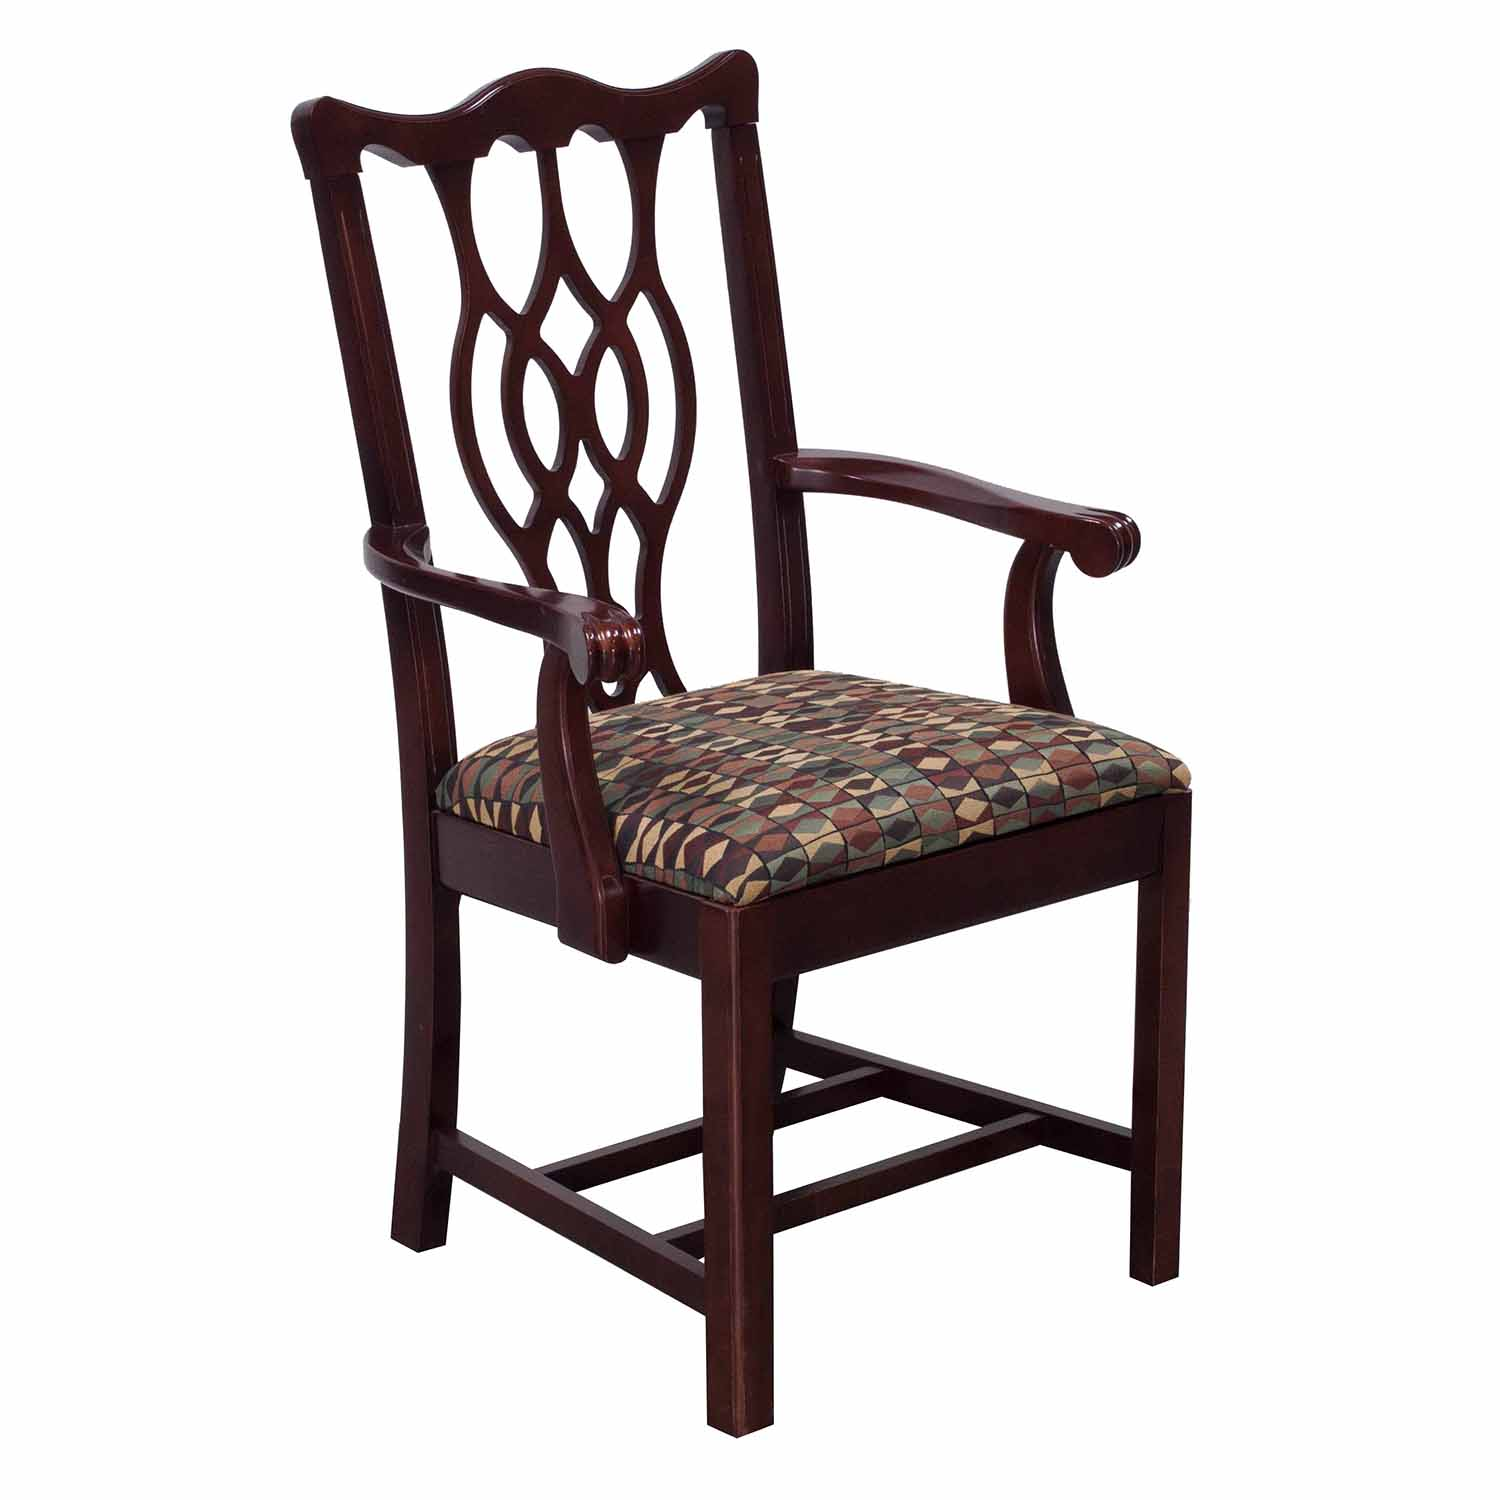 Bernhardt Chair Bernhardt Eaton Square Used Wooden Arm Chair Mahogany